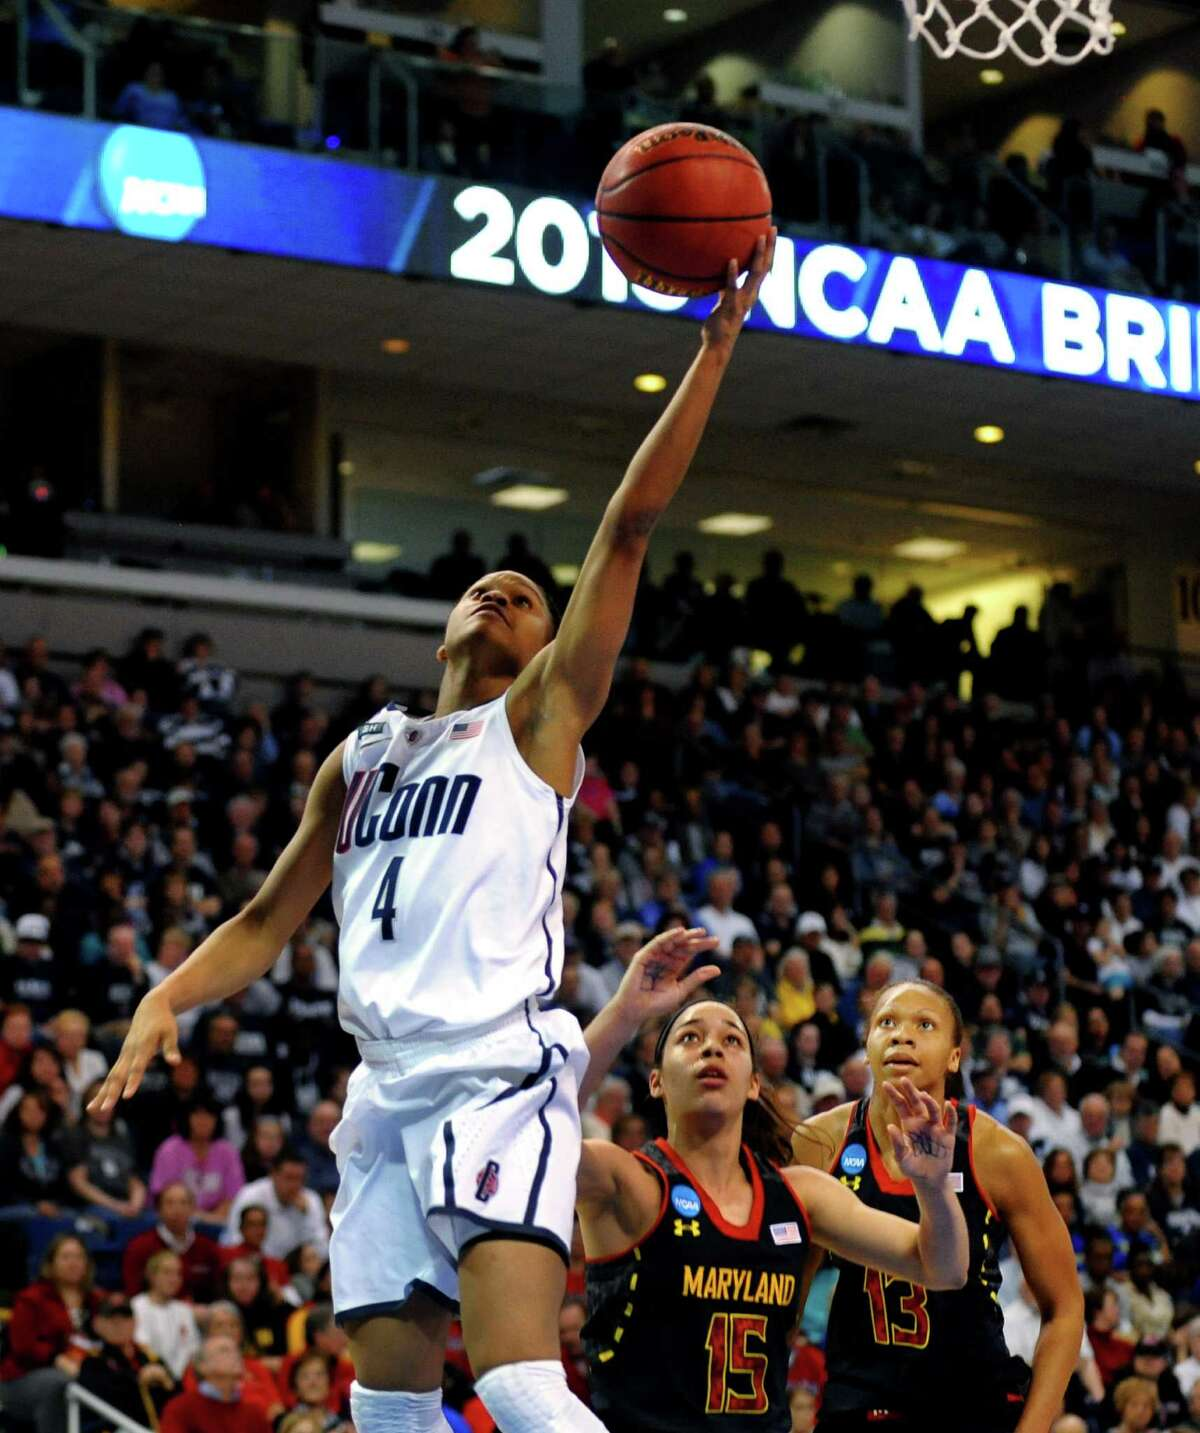 UConn's Moriah Jefferson lays up the ball, during the women's NCAA Tournament Regional Semifinals action against University of Maryland at the Webster Bank Arena in Bridgeport, Conn. on Saturday March 30, 2013.